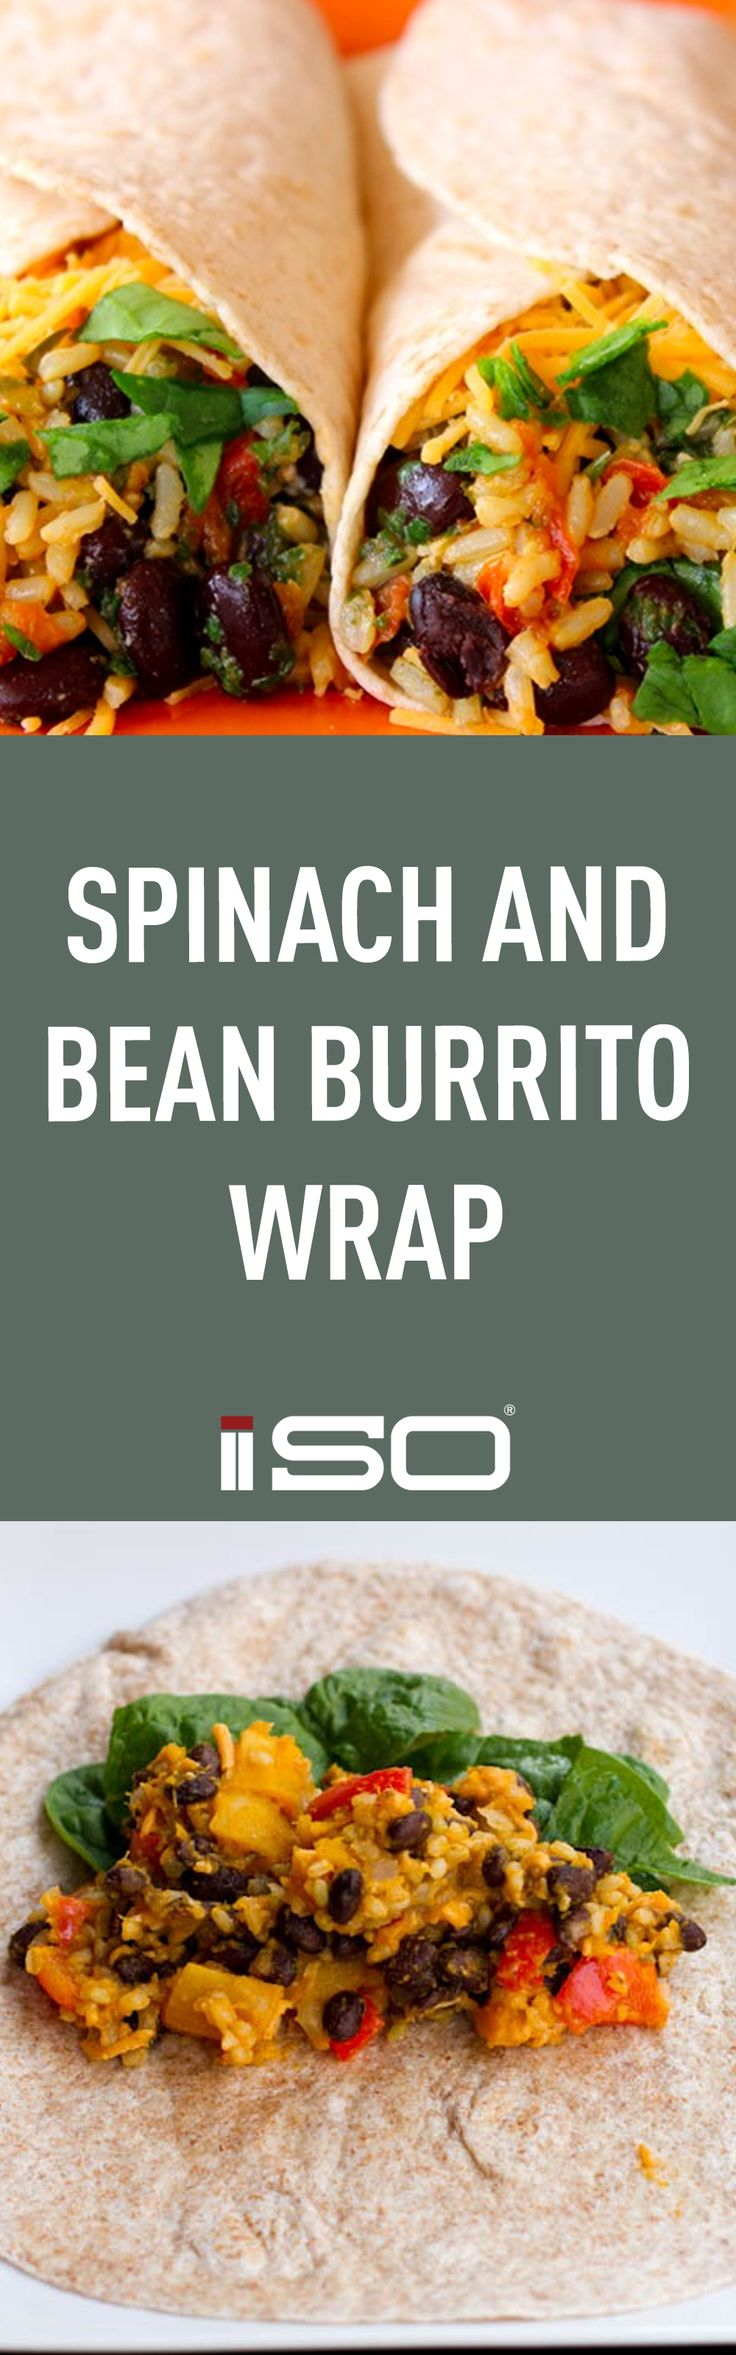 Spinach Bean Burrito Wrap. Easy, Healthy Recipe. Healthy Lunch.